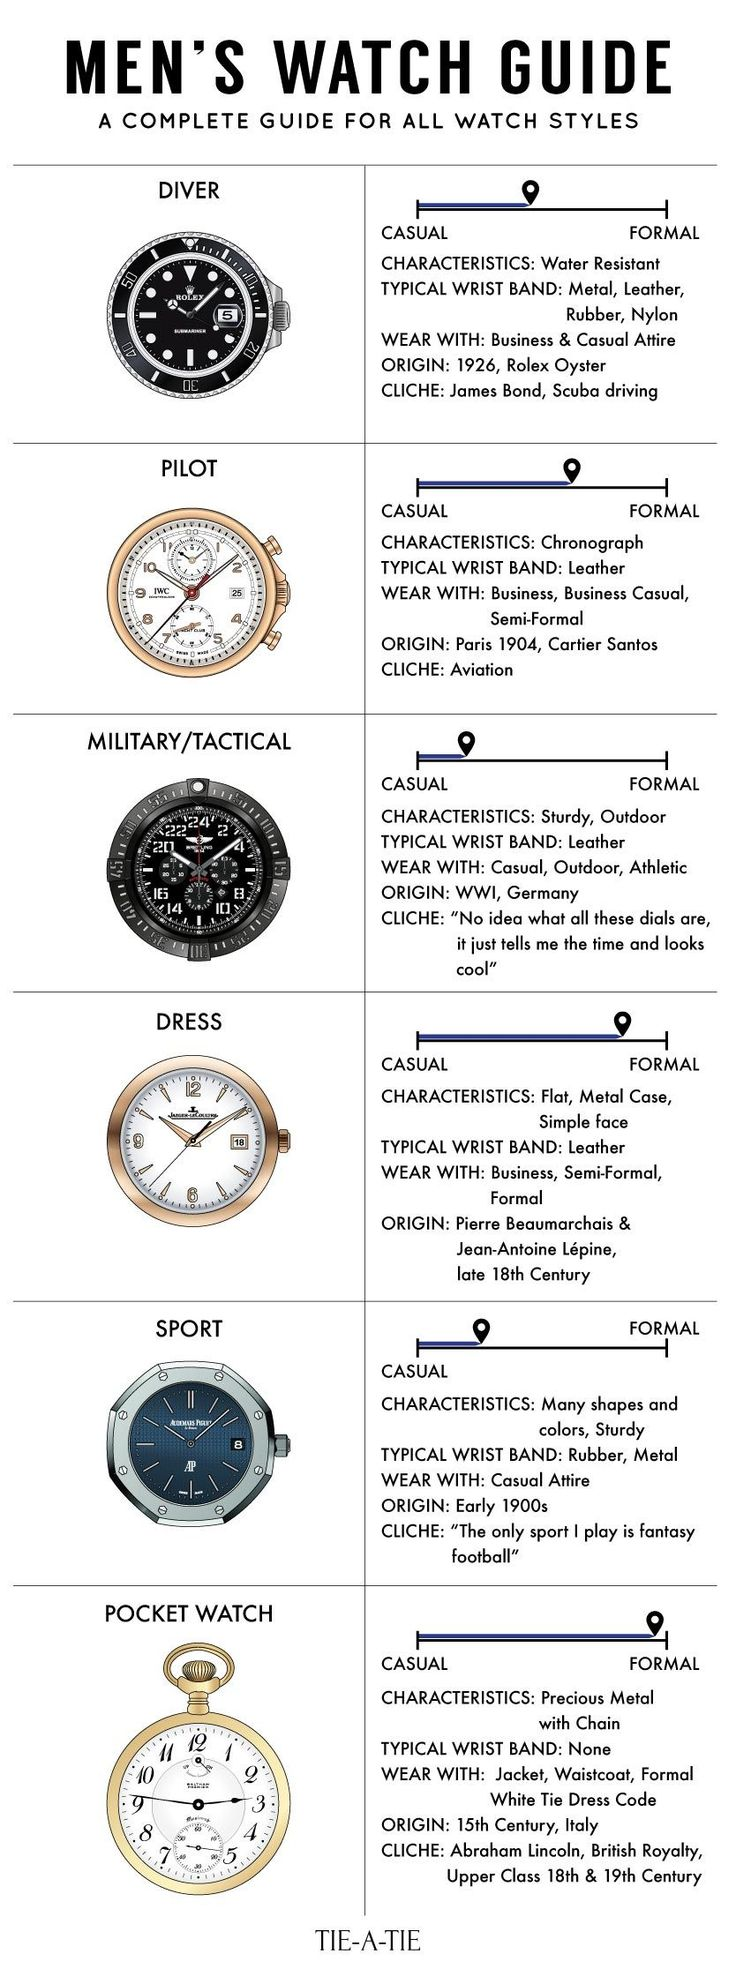 A Guide to Men's Watch Styles